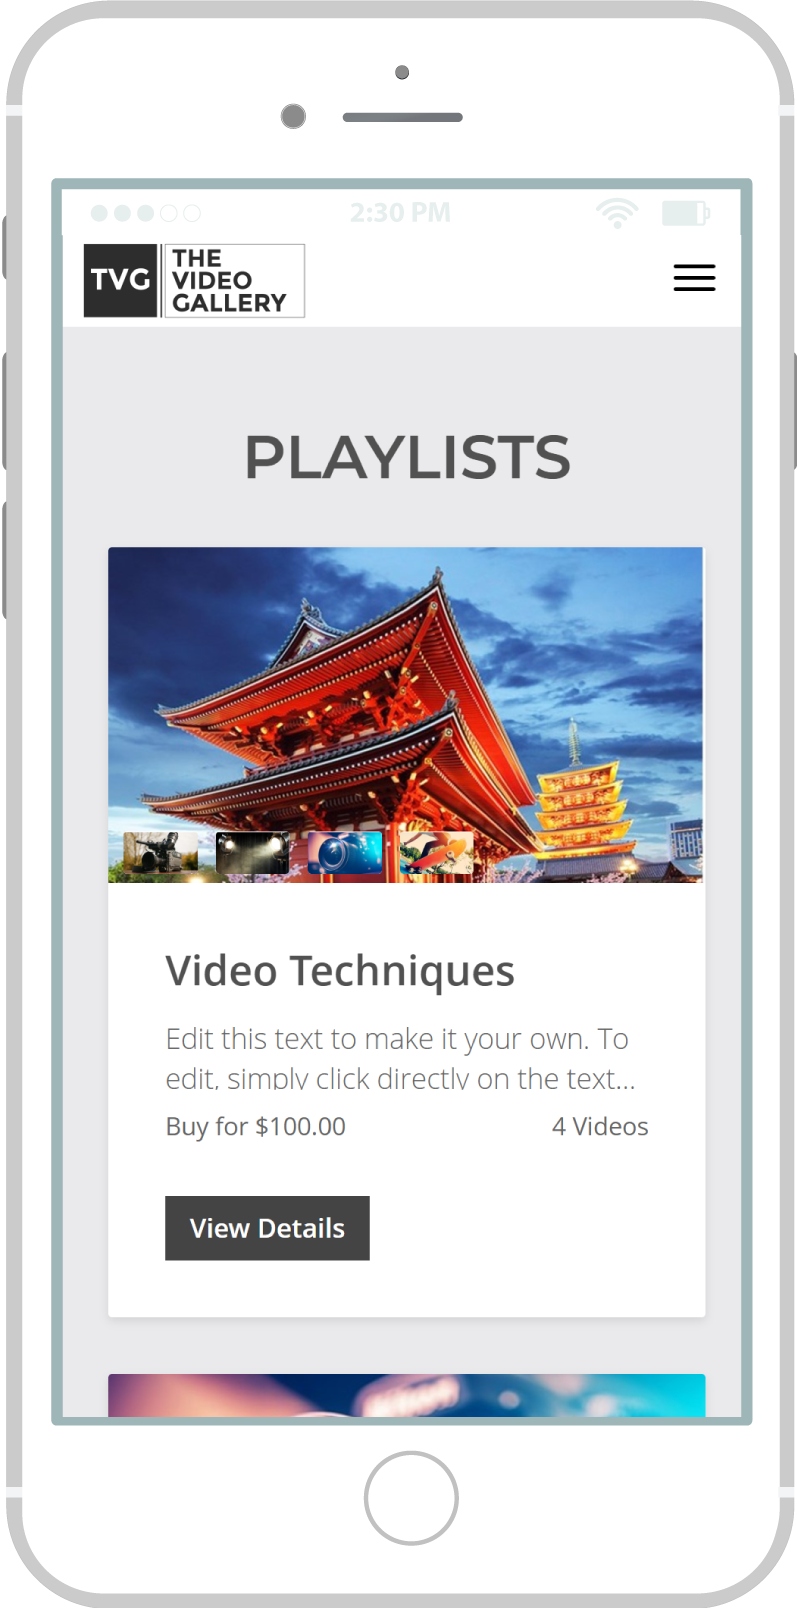 All-In-One Online Video Sales Website - The Video Gallery Mobile View 3 Example